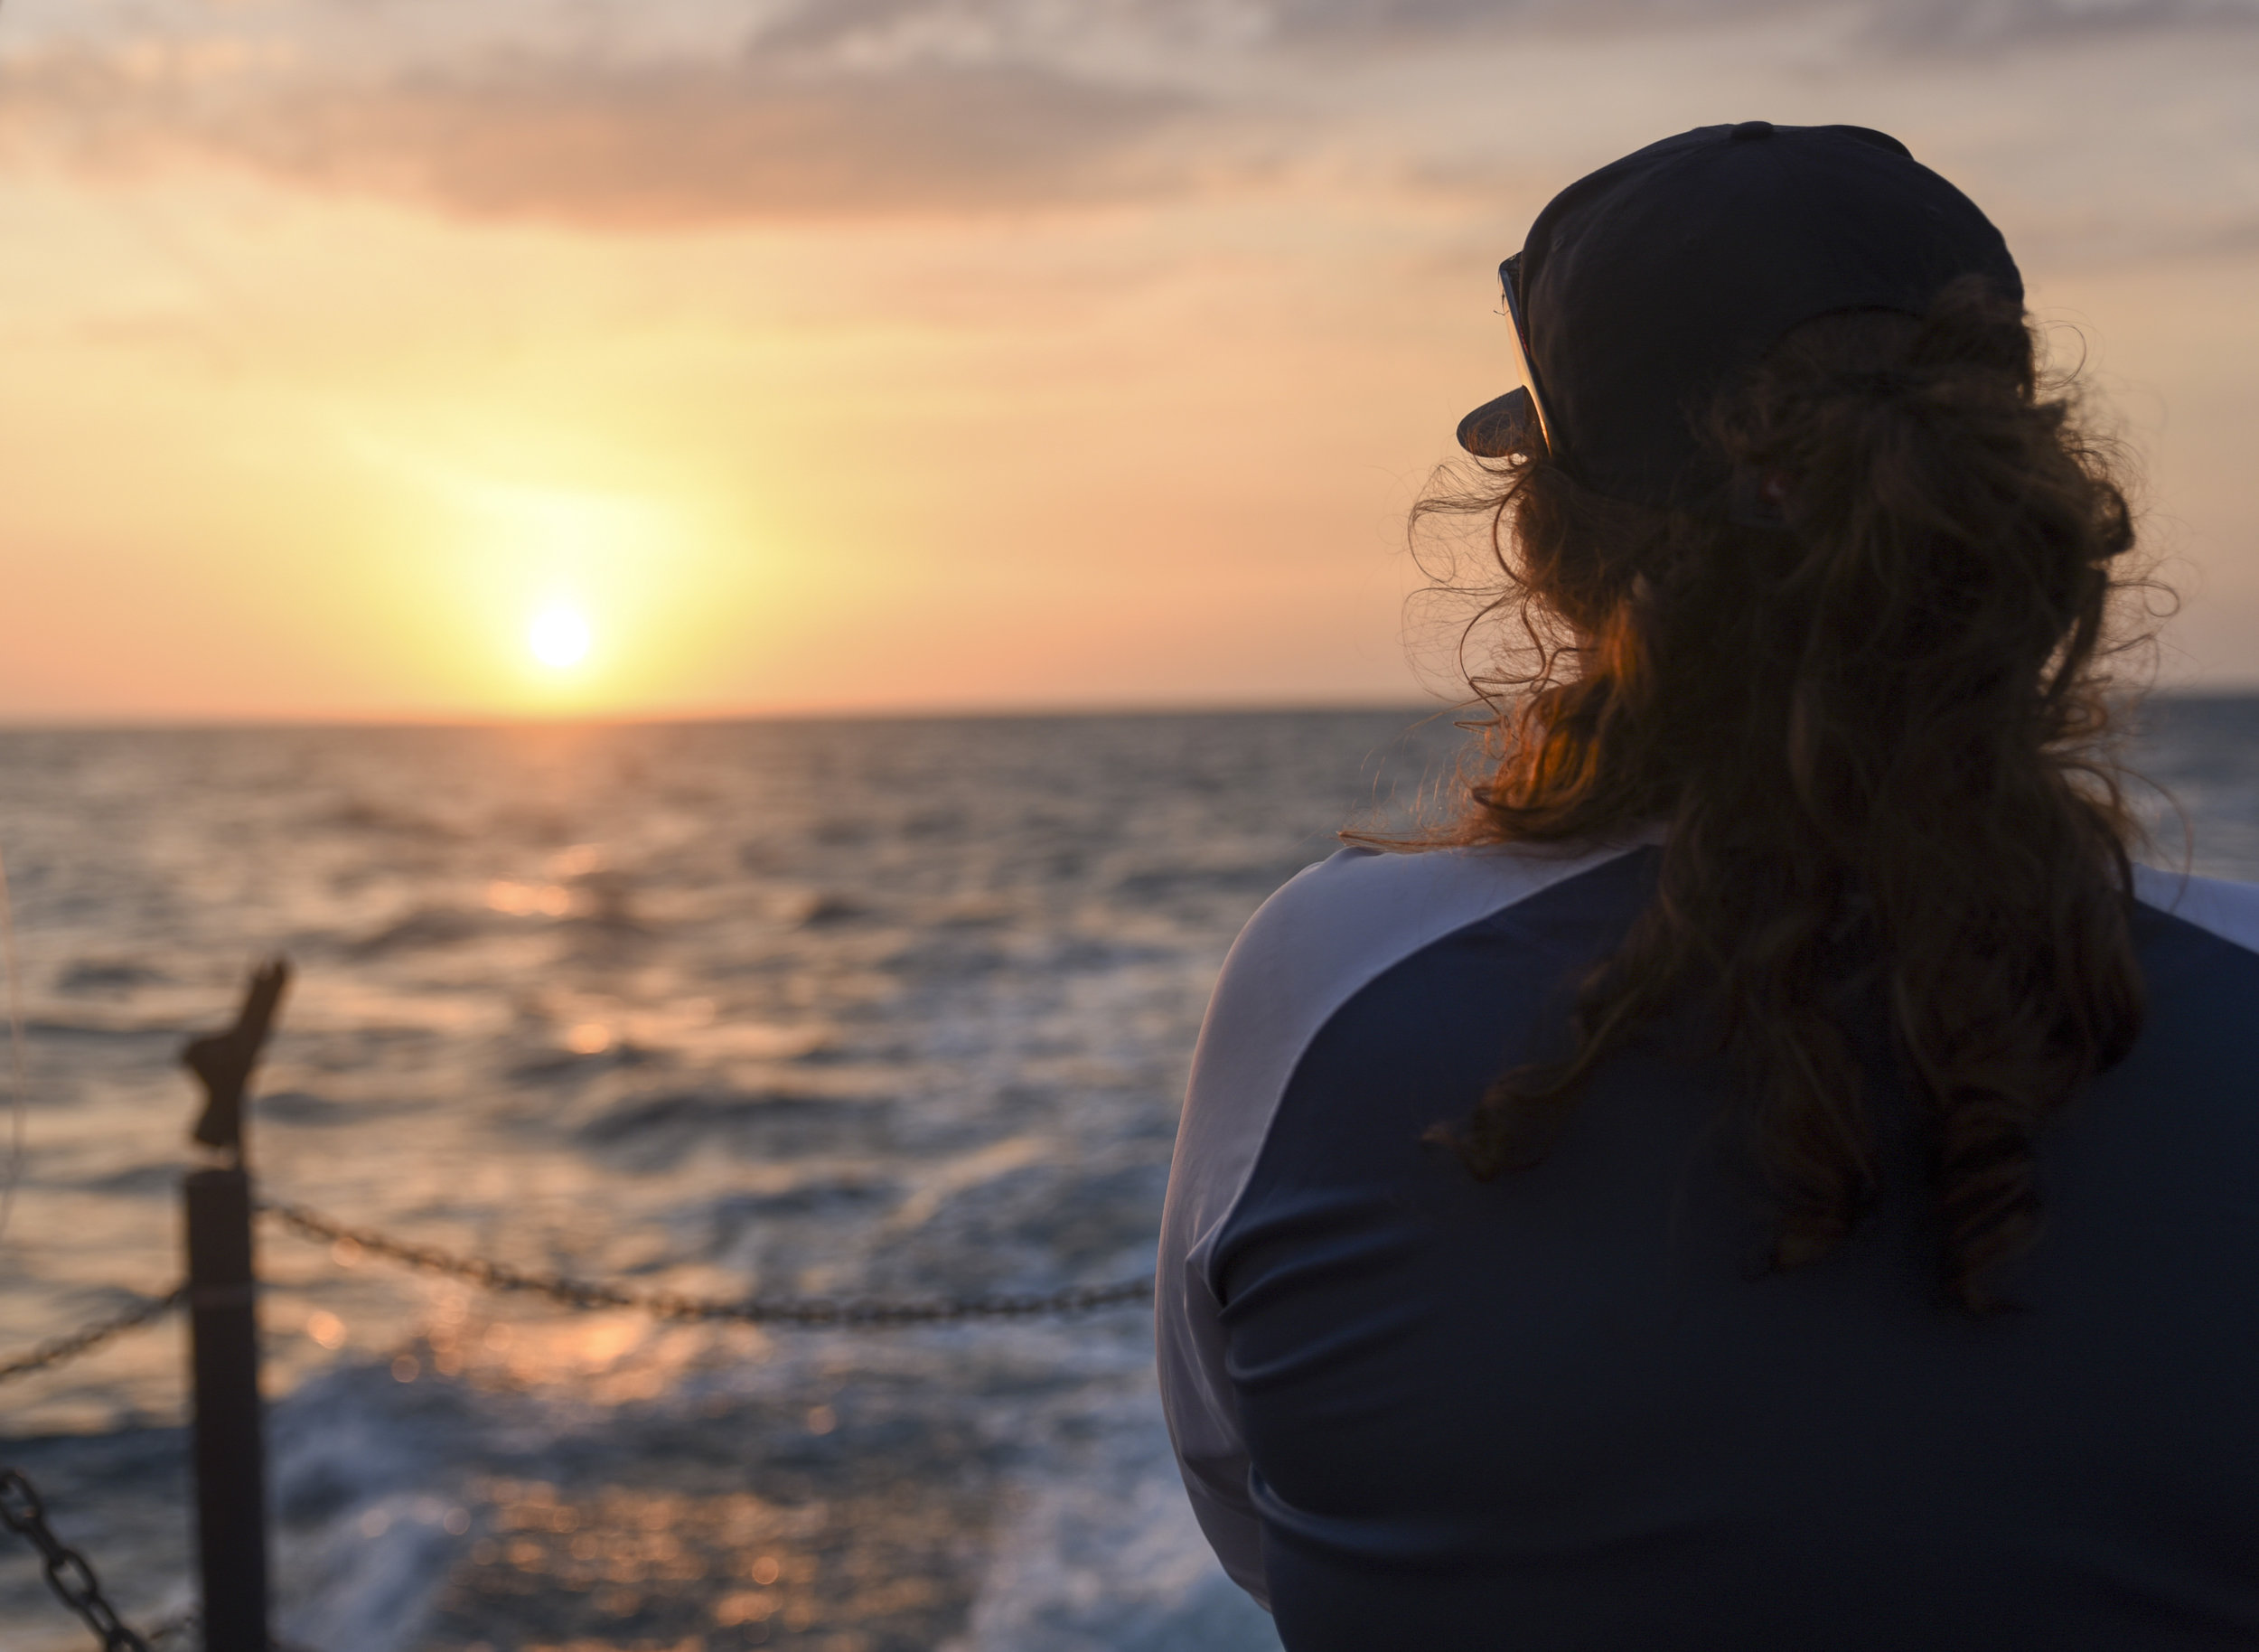 Marlo Leikam, a 21-year-old junior at the New College of Florida, watches the sun set after work is done for the day.